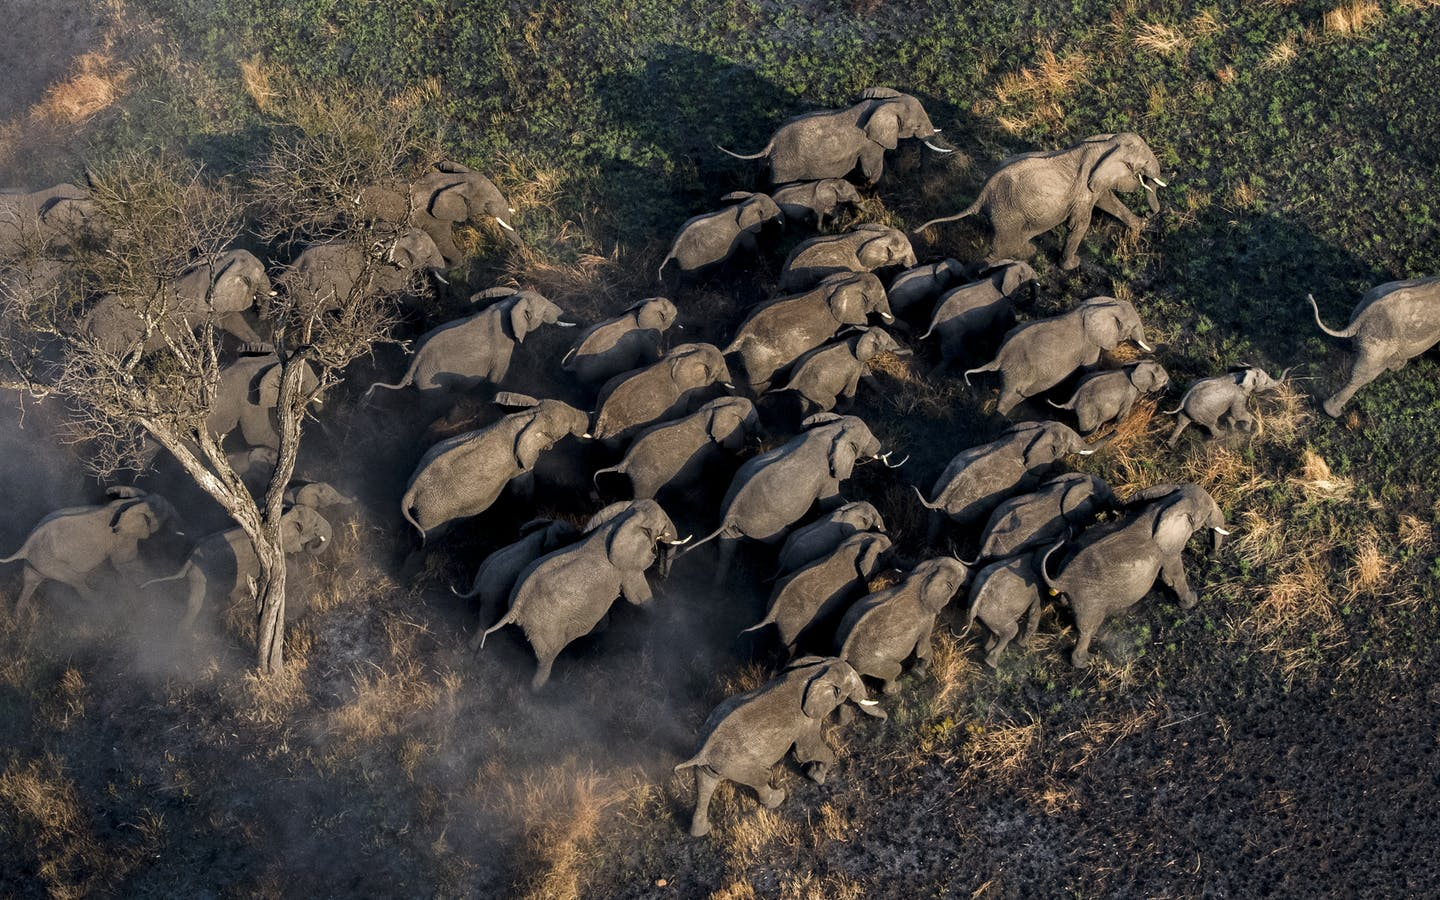 A herd of elephants near the Mara North Conservancy in Kenya.